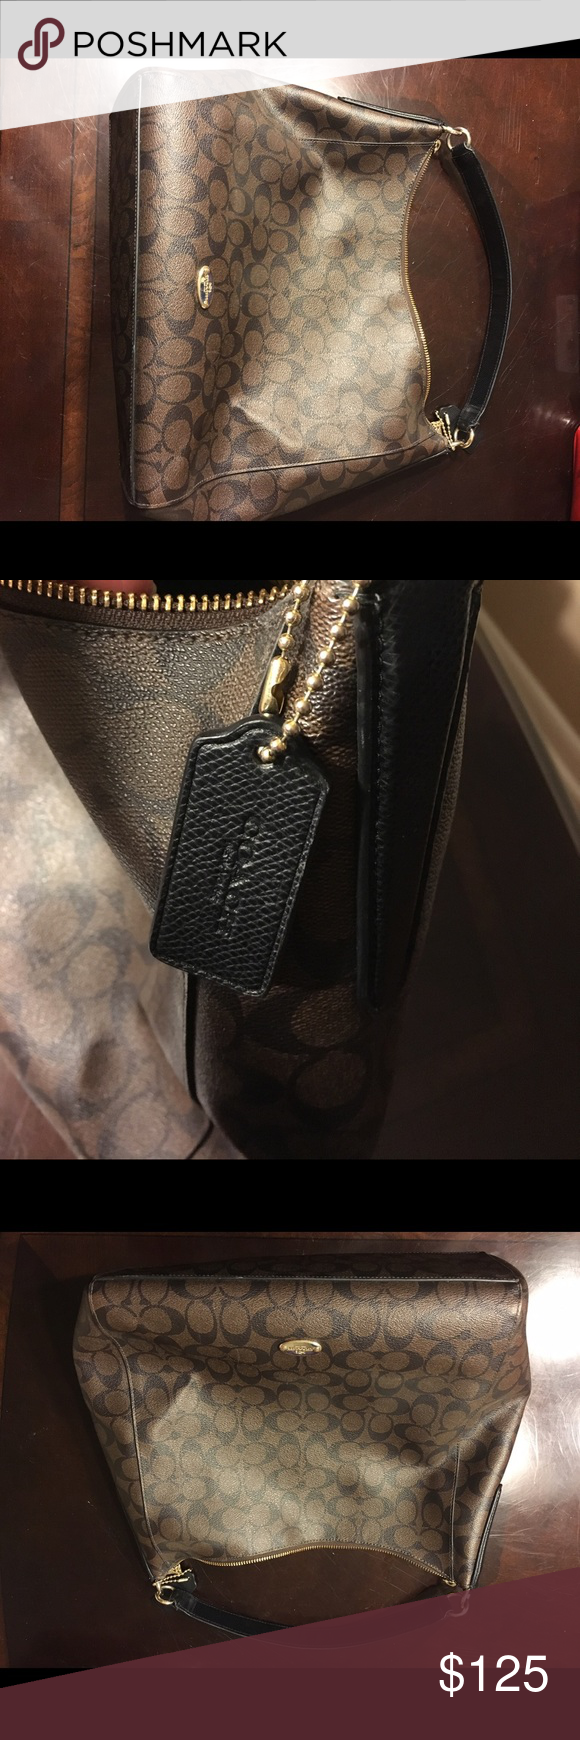 Coach Handbag Brown & Gold Coach bag with strap! Like New! Used less then a month! Coach Bags Hobos